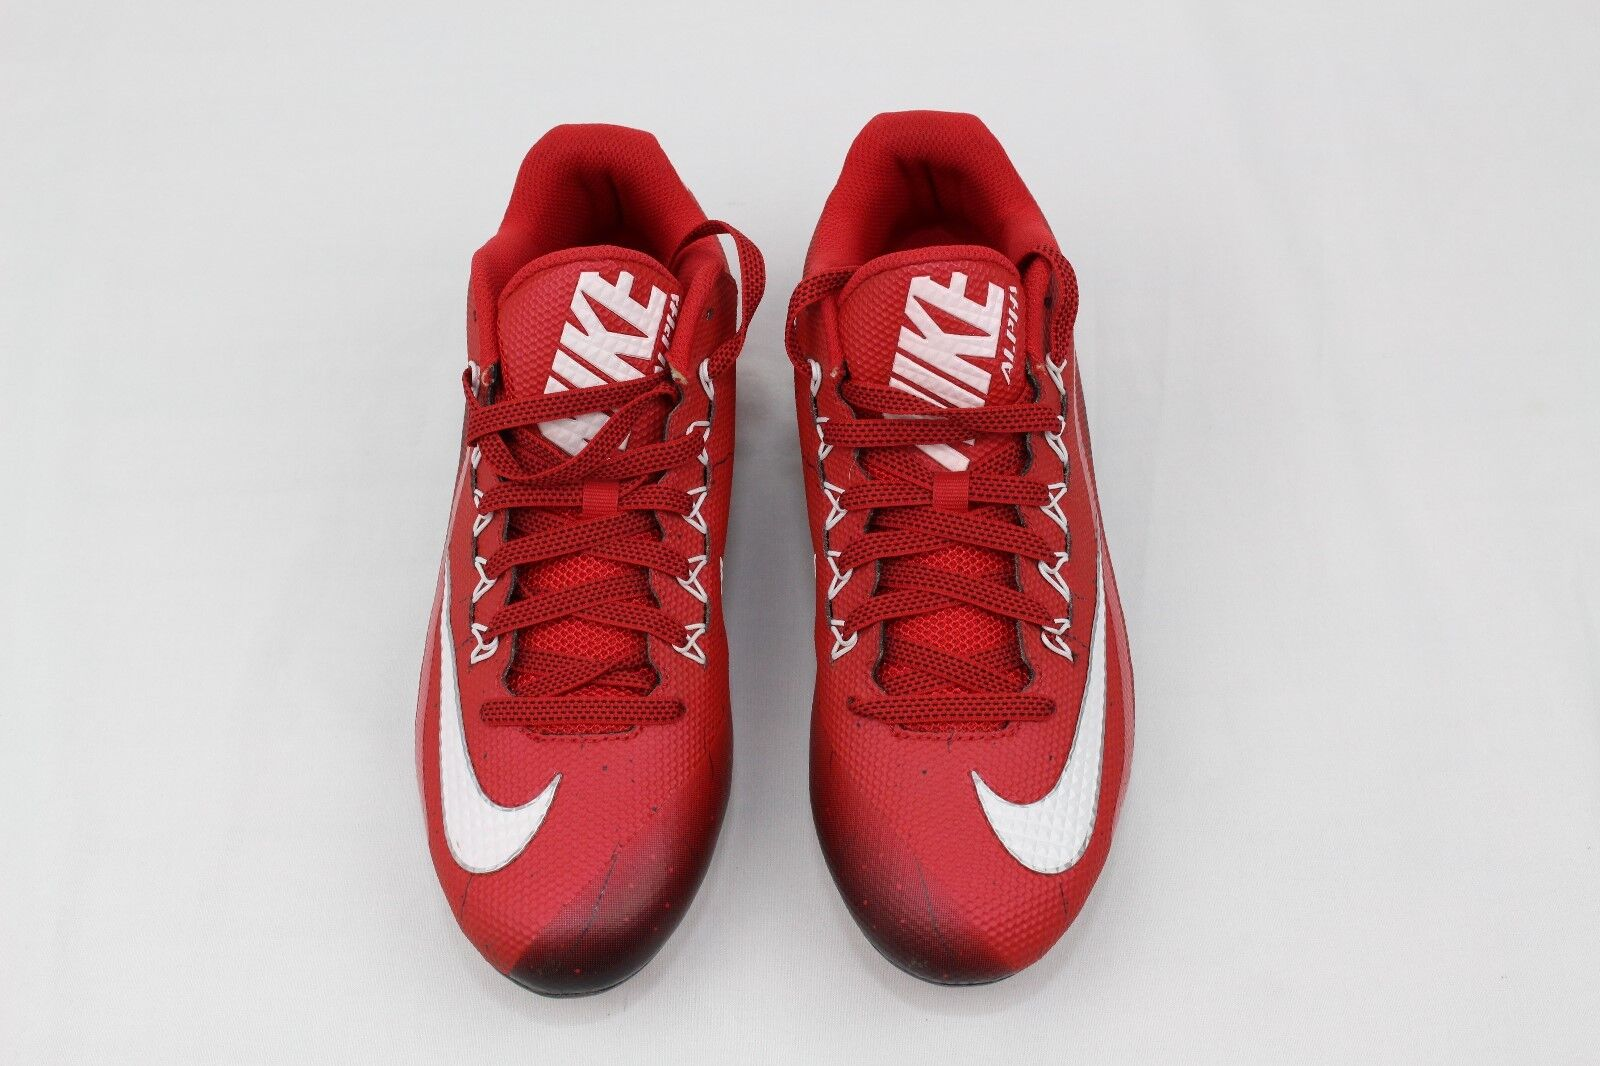 sale retailer 8482c 634b8 ... NIKE Alpha Pro Pro Pro 2 Low Red White Molded Football Cleats Men s  Sz10 made in ...